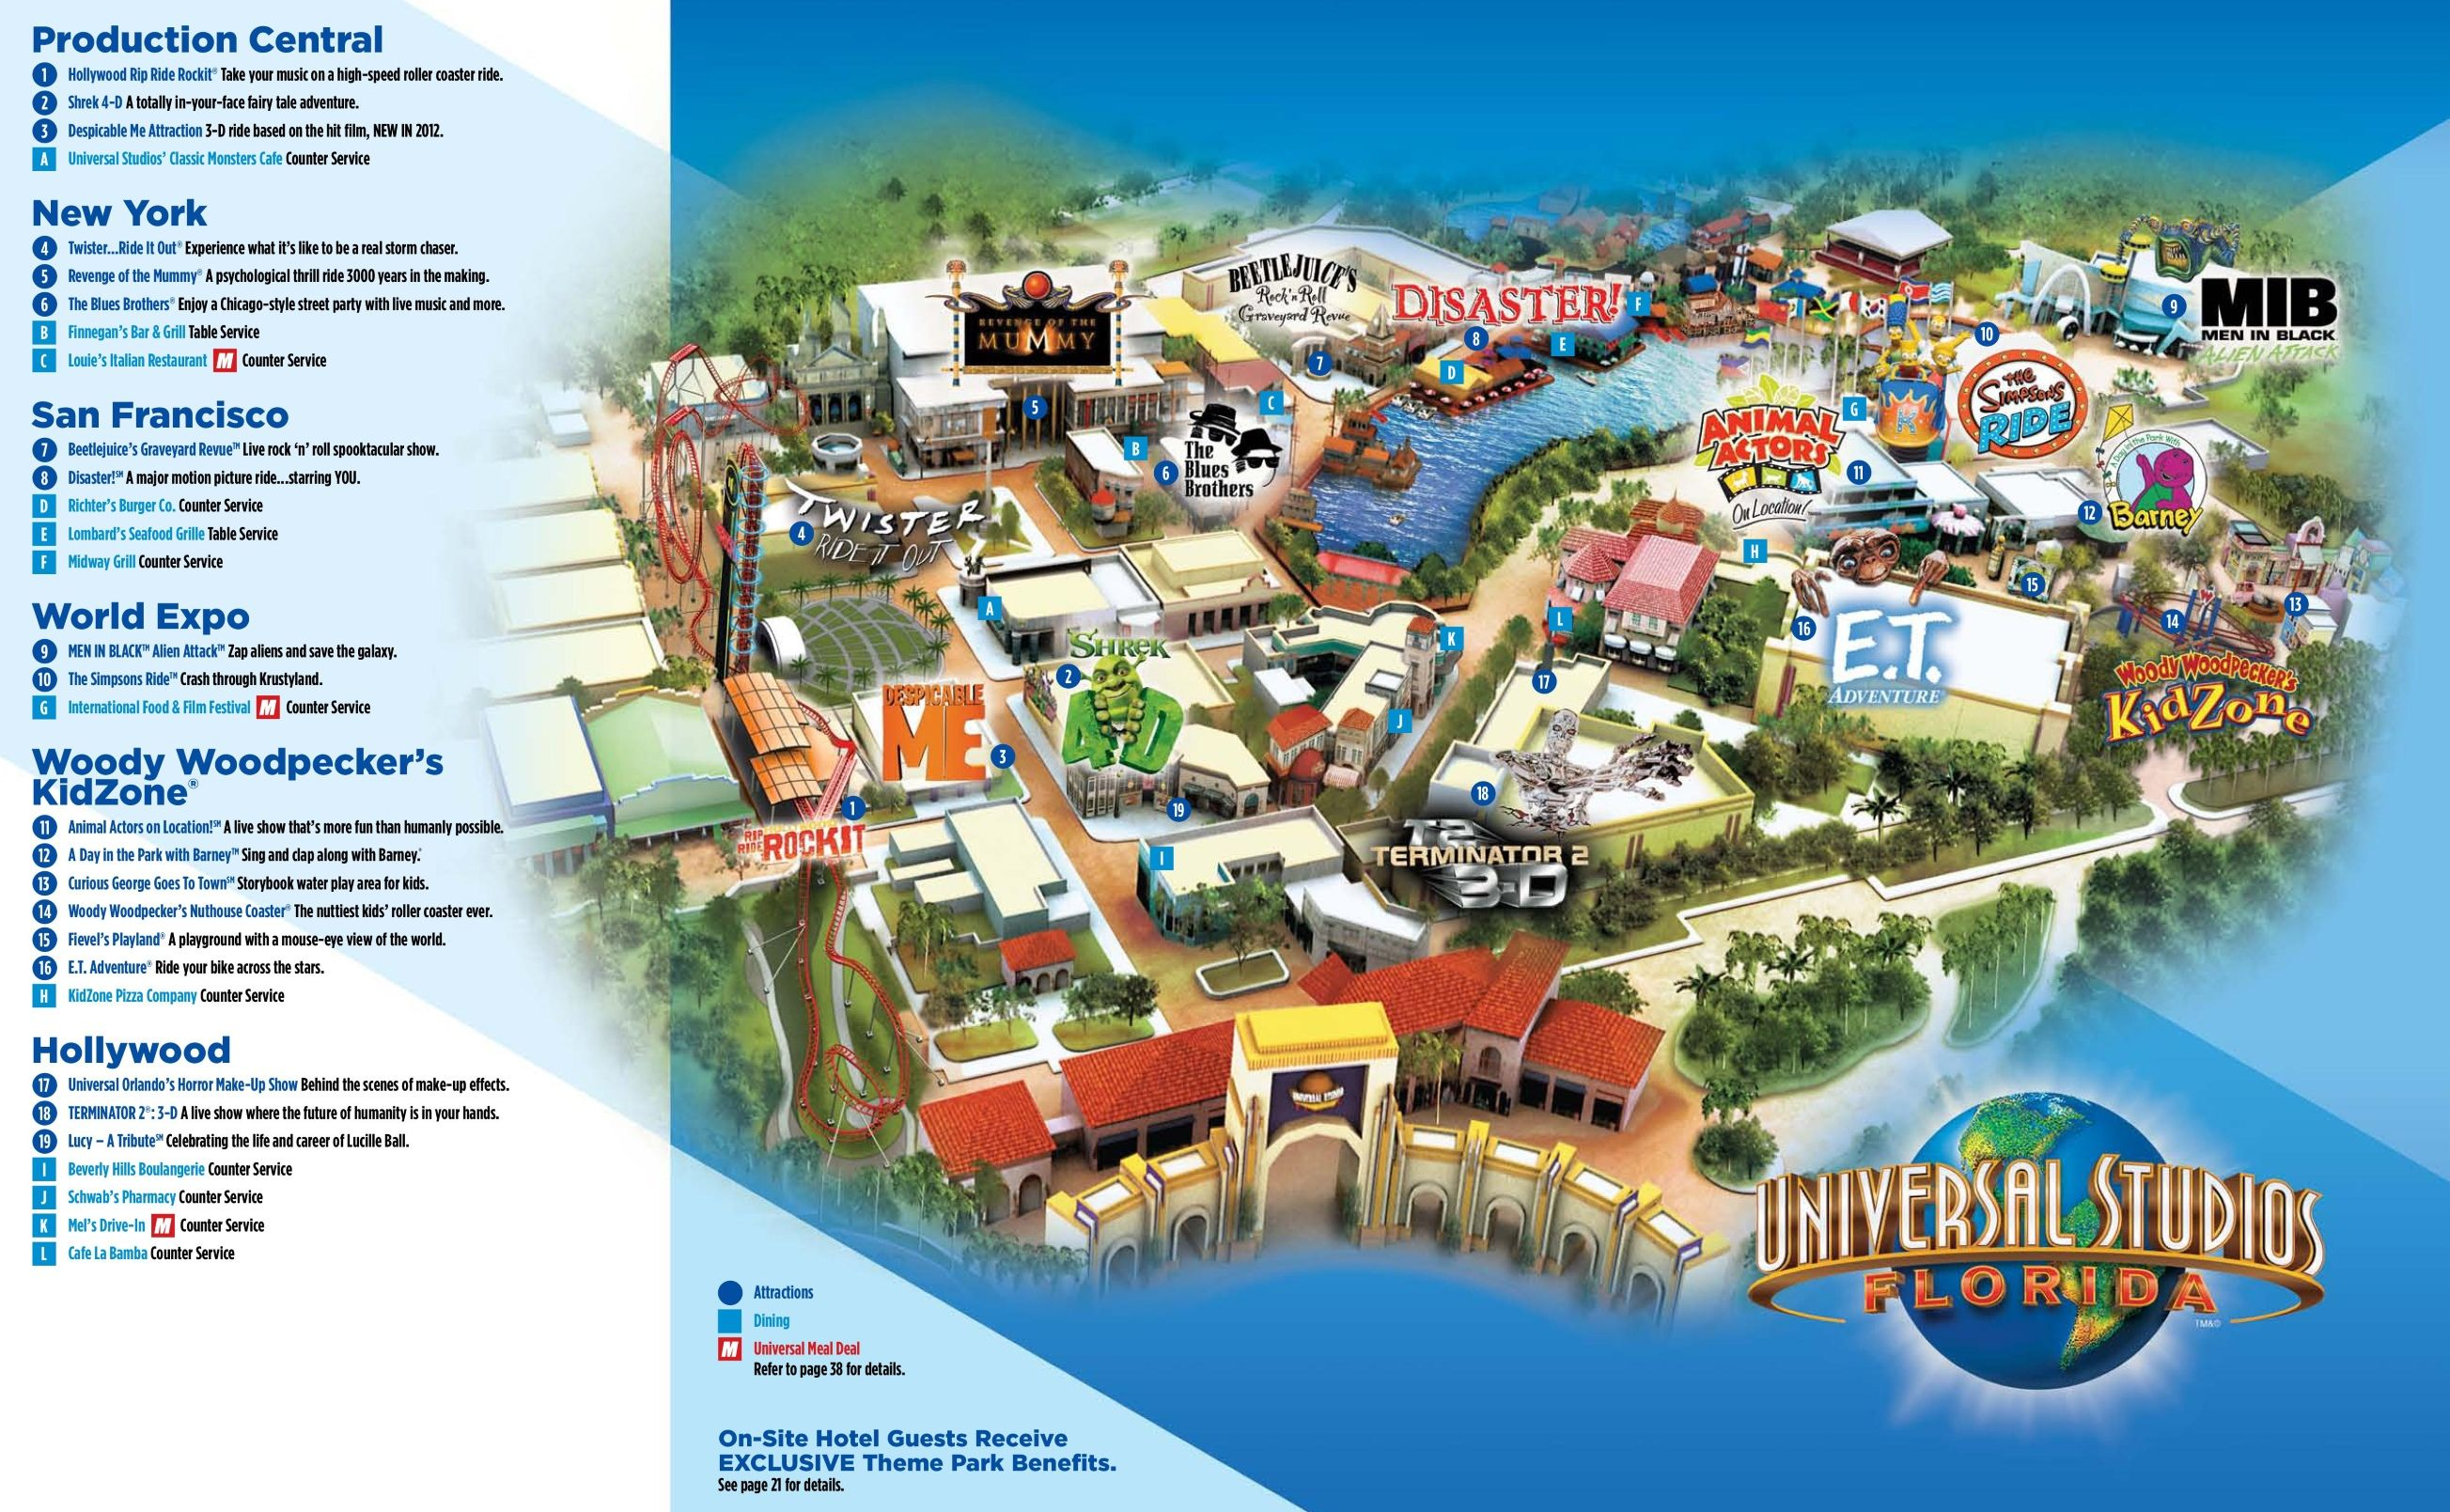 Orlando Florida Universal Studios Map Pin on Travel BEEN THERE